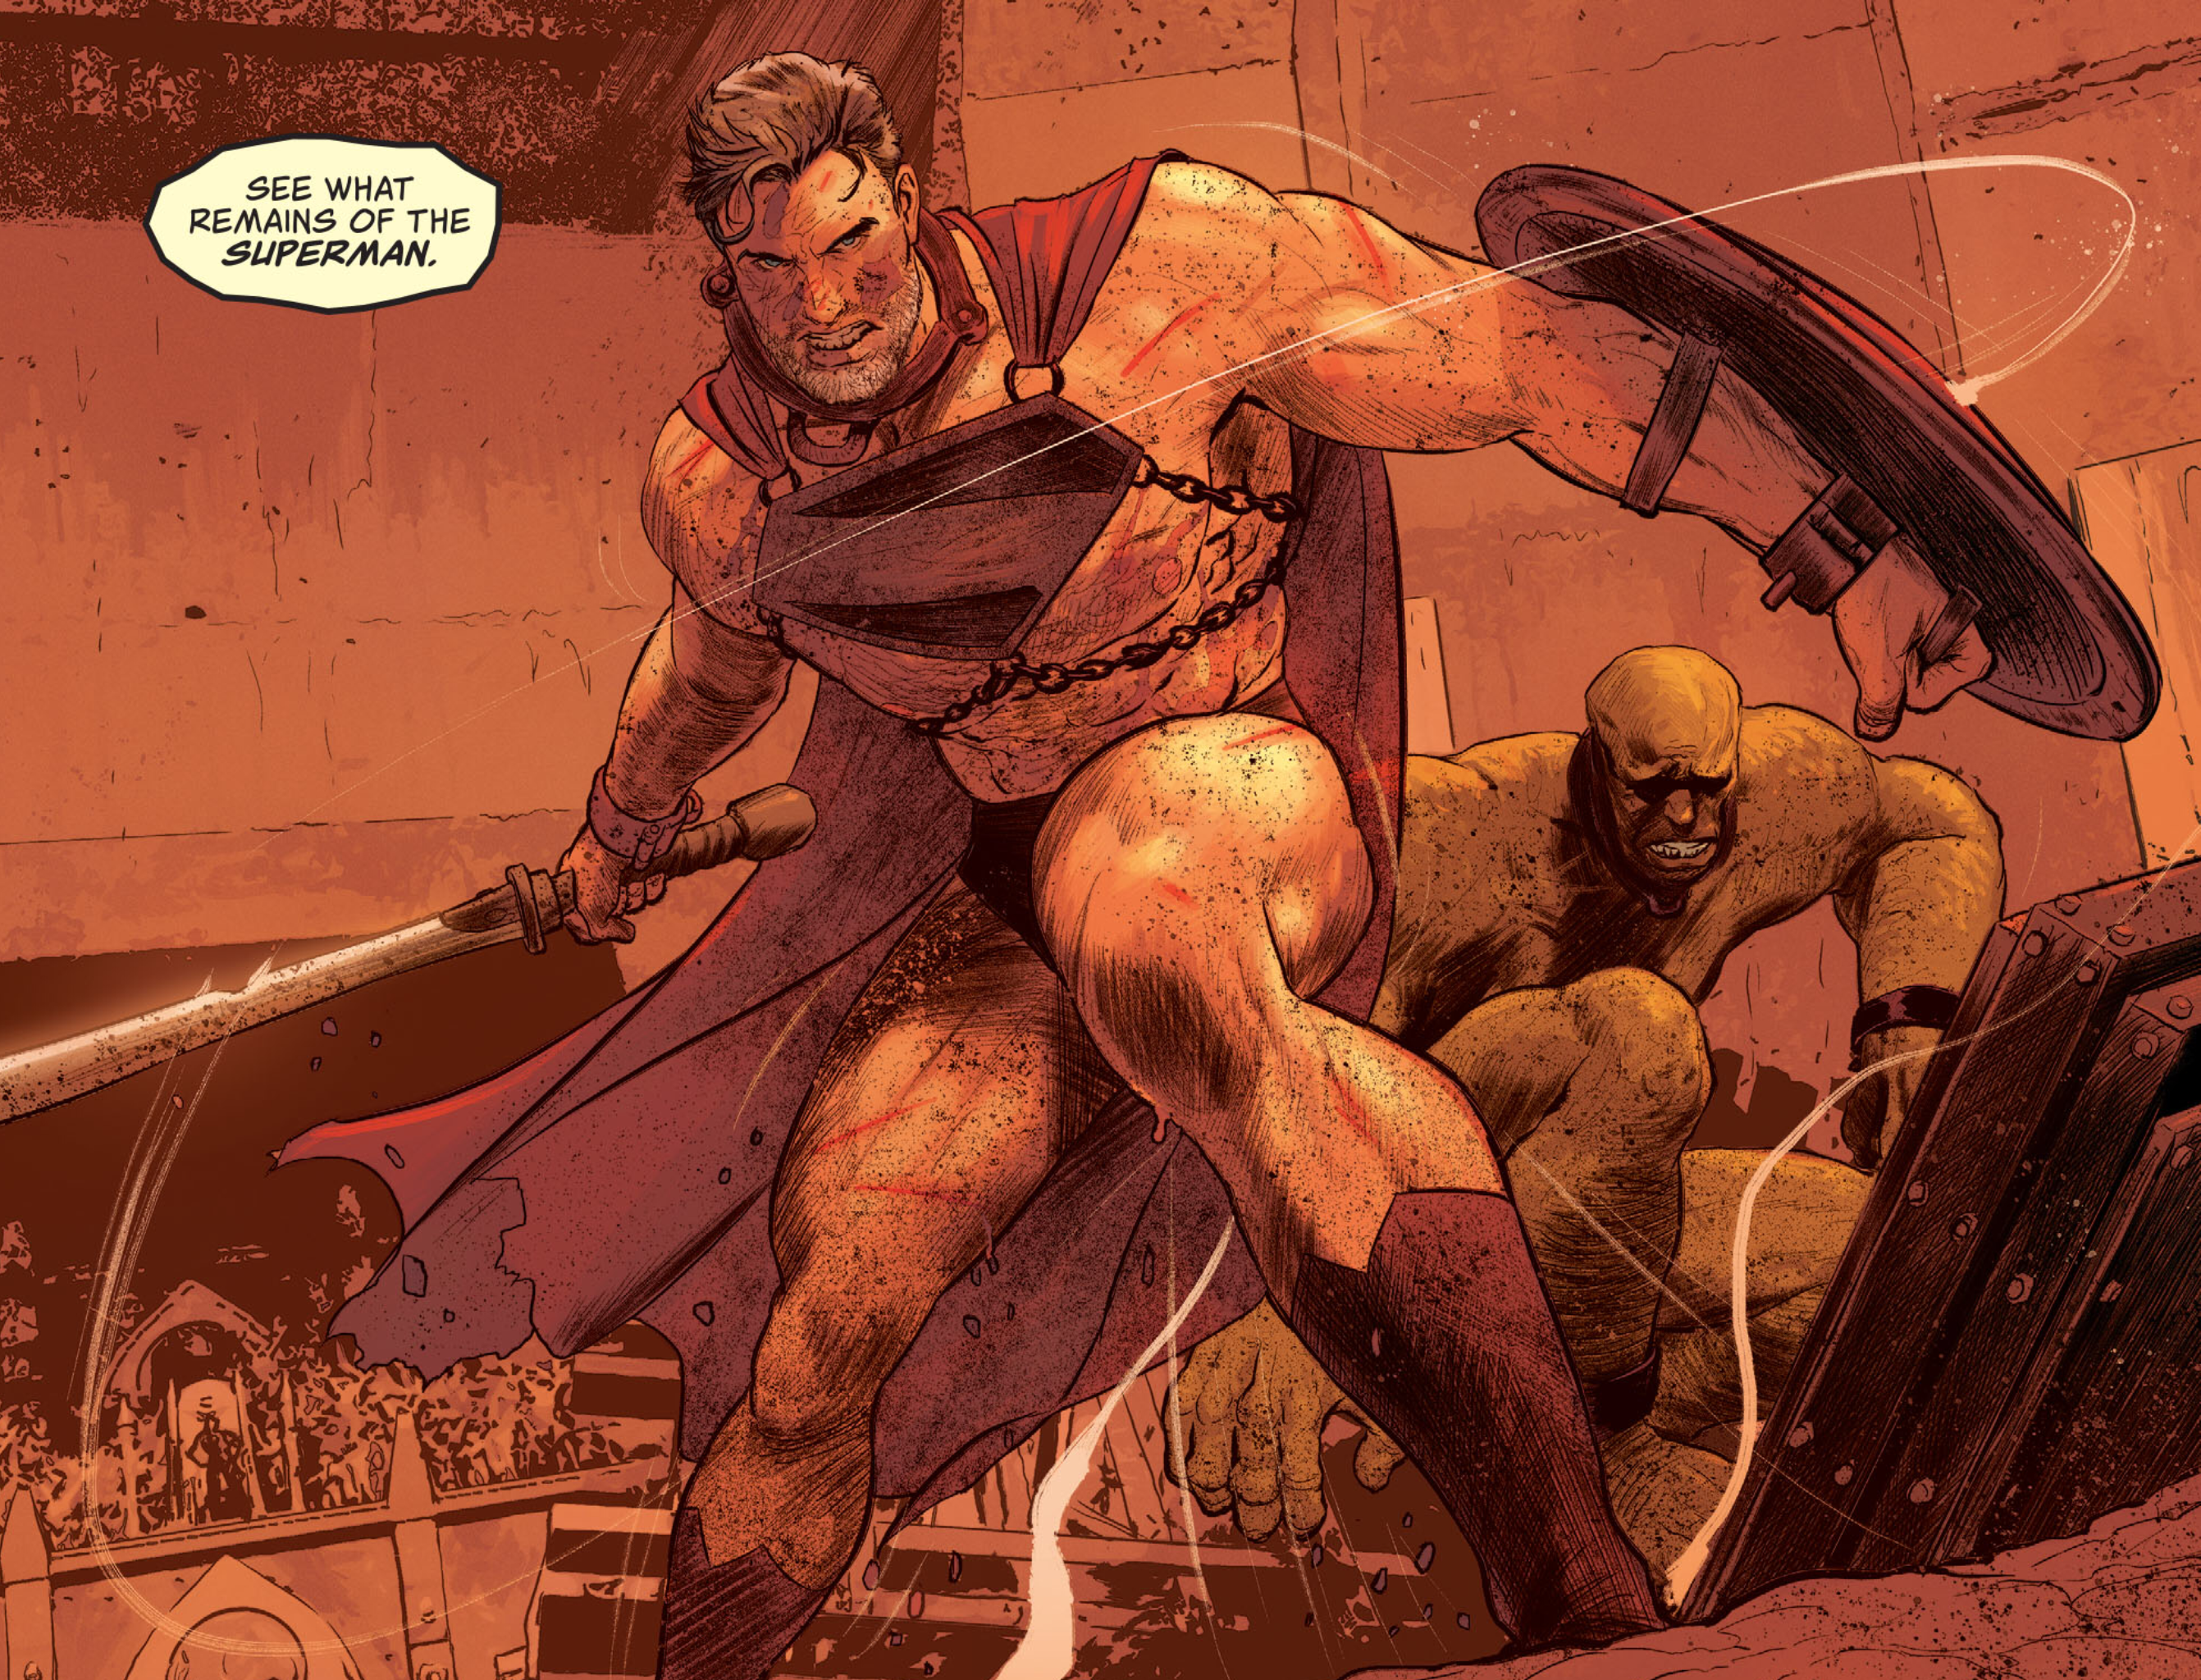 """A grey-haired and bloodied Superman springs out of a gladiator cage on War World, dressed only in his cape, underwear, boots, and a Superman symbol chained to his chest. He brandishes a sword and shield as the announcer cries """"See what remains of the Superman,"""" in Future State: Superman Worlds of War #1, DC Comics (2021)."""